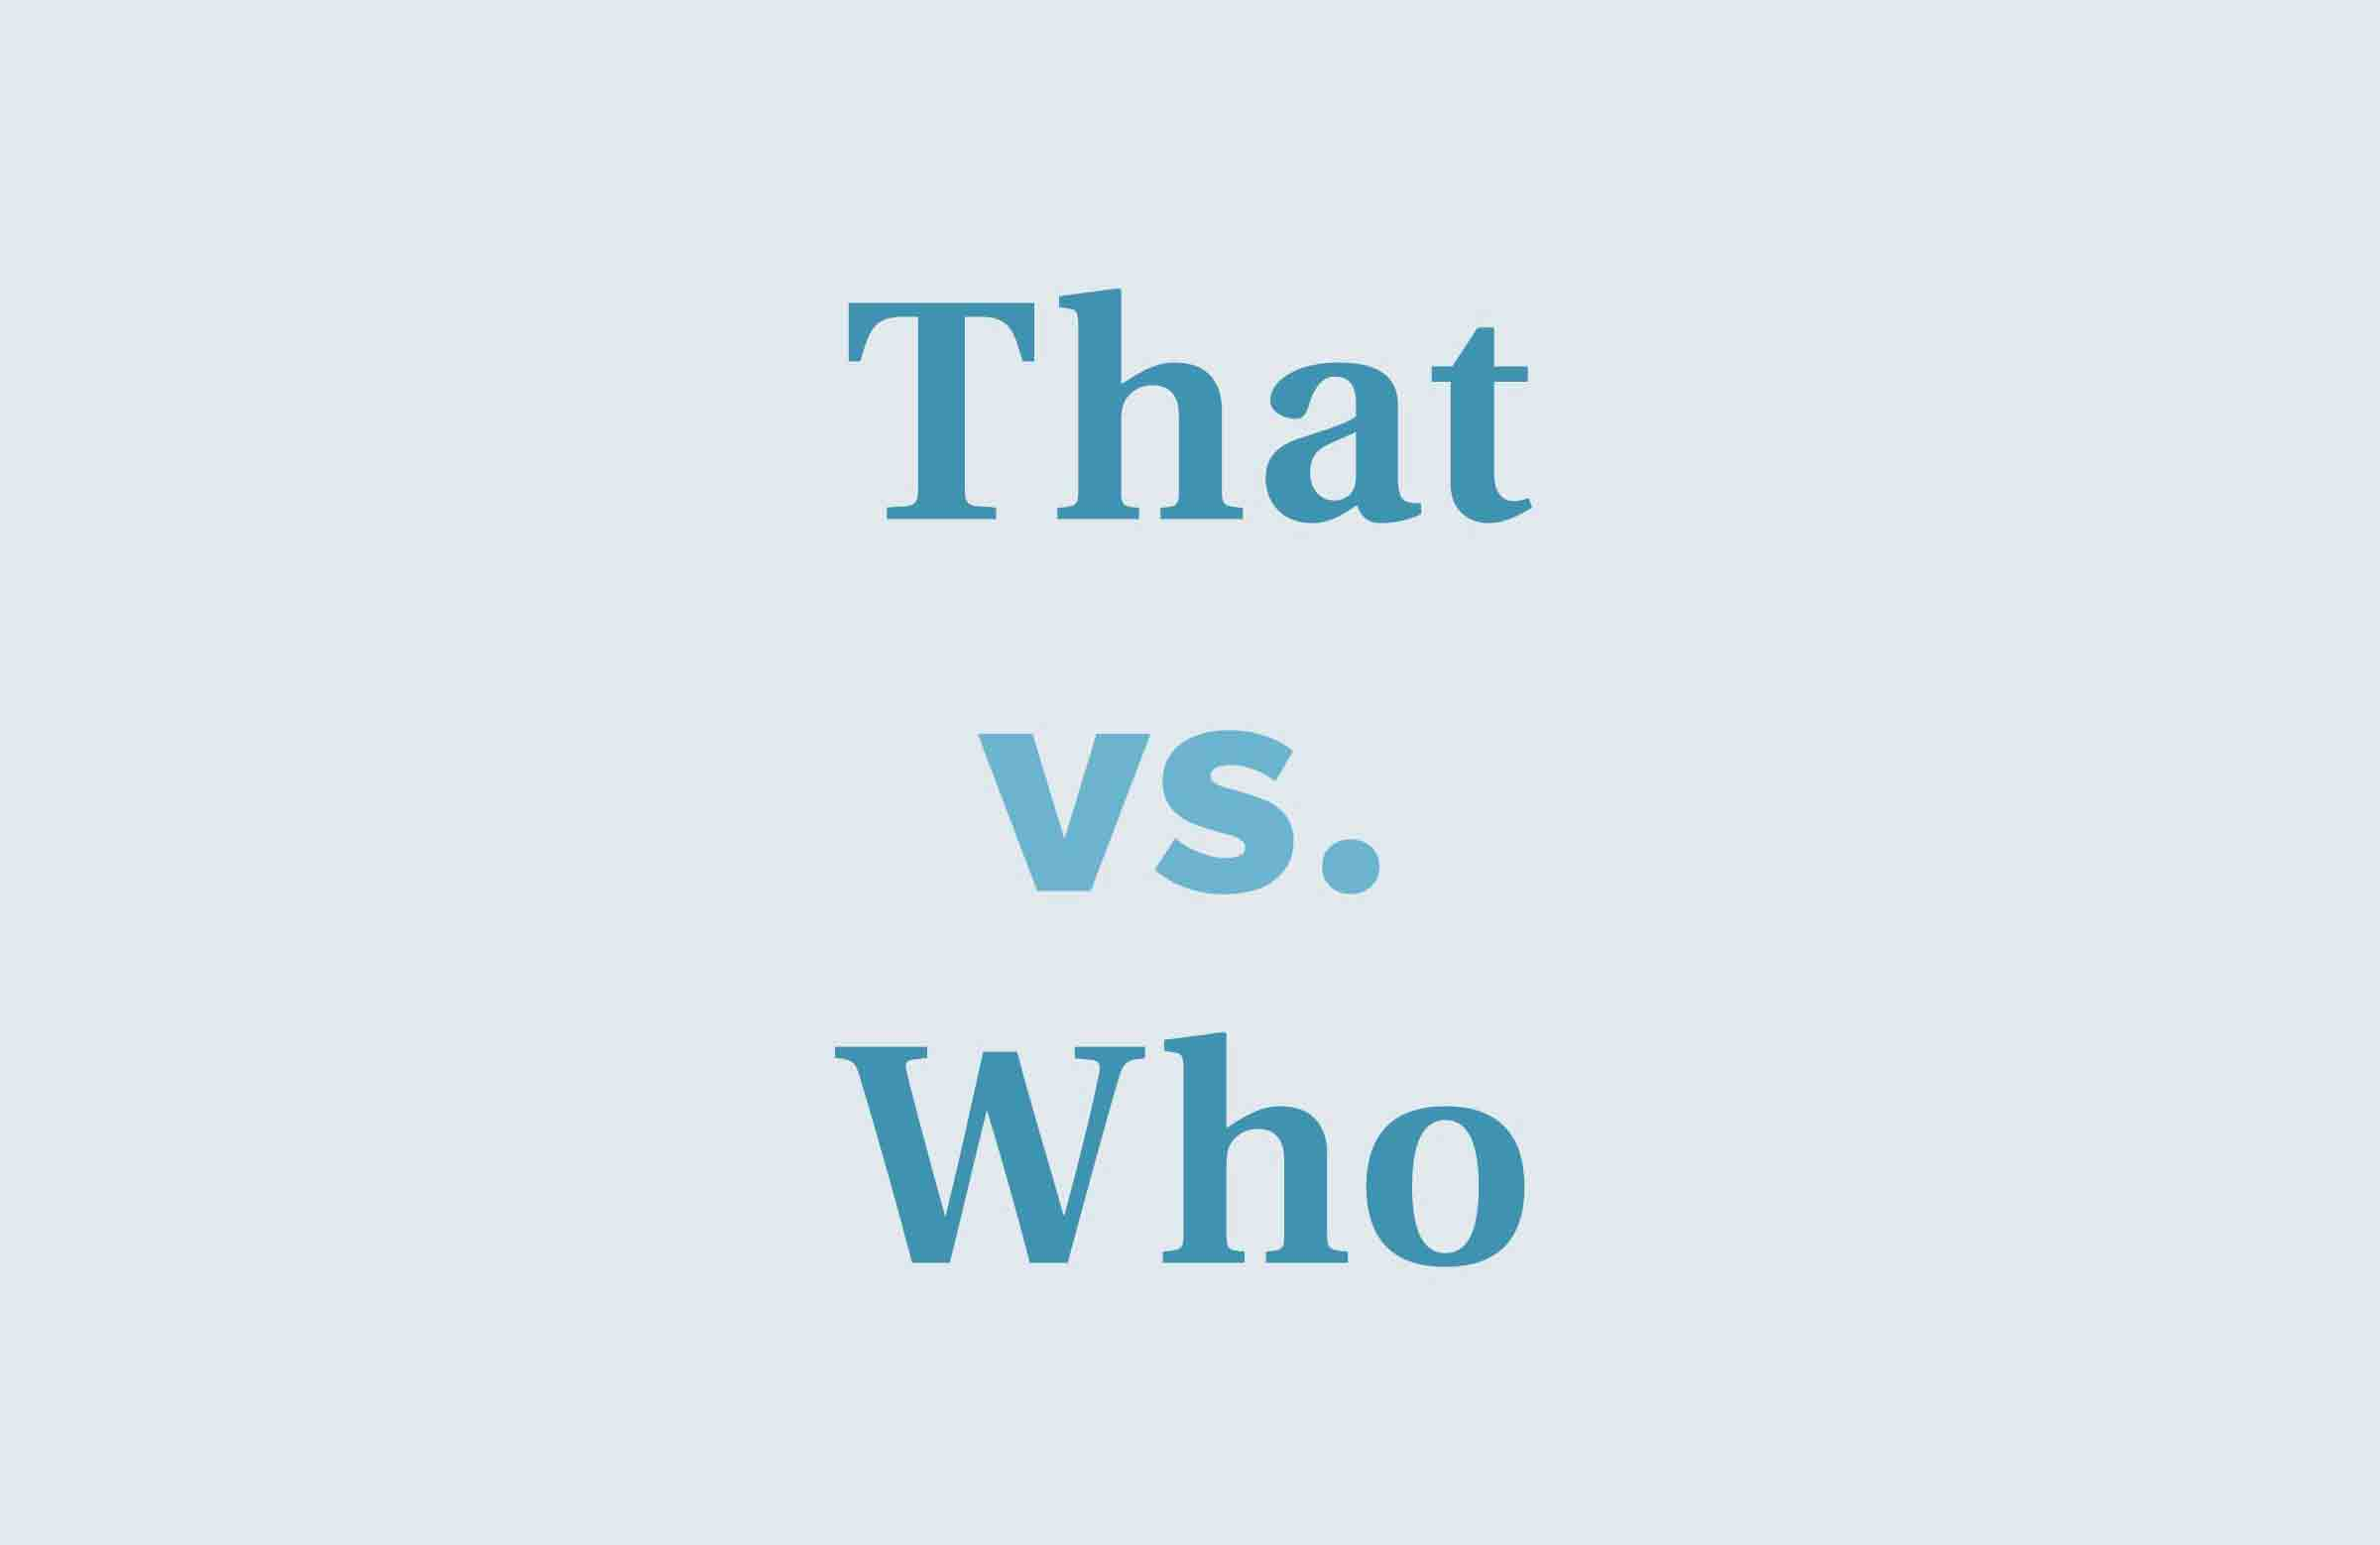 Using 'that' when you mean 'who'